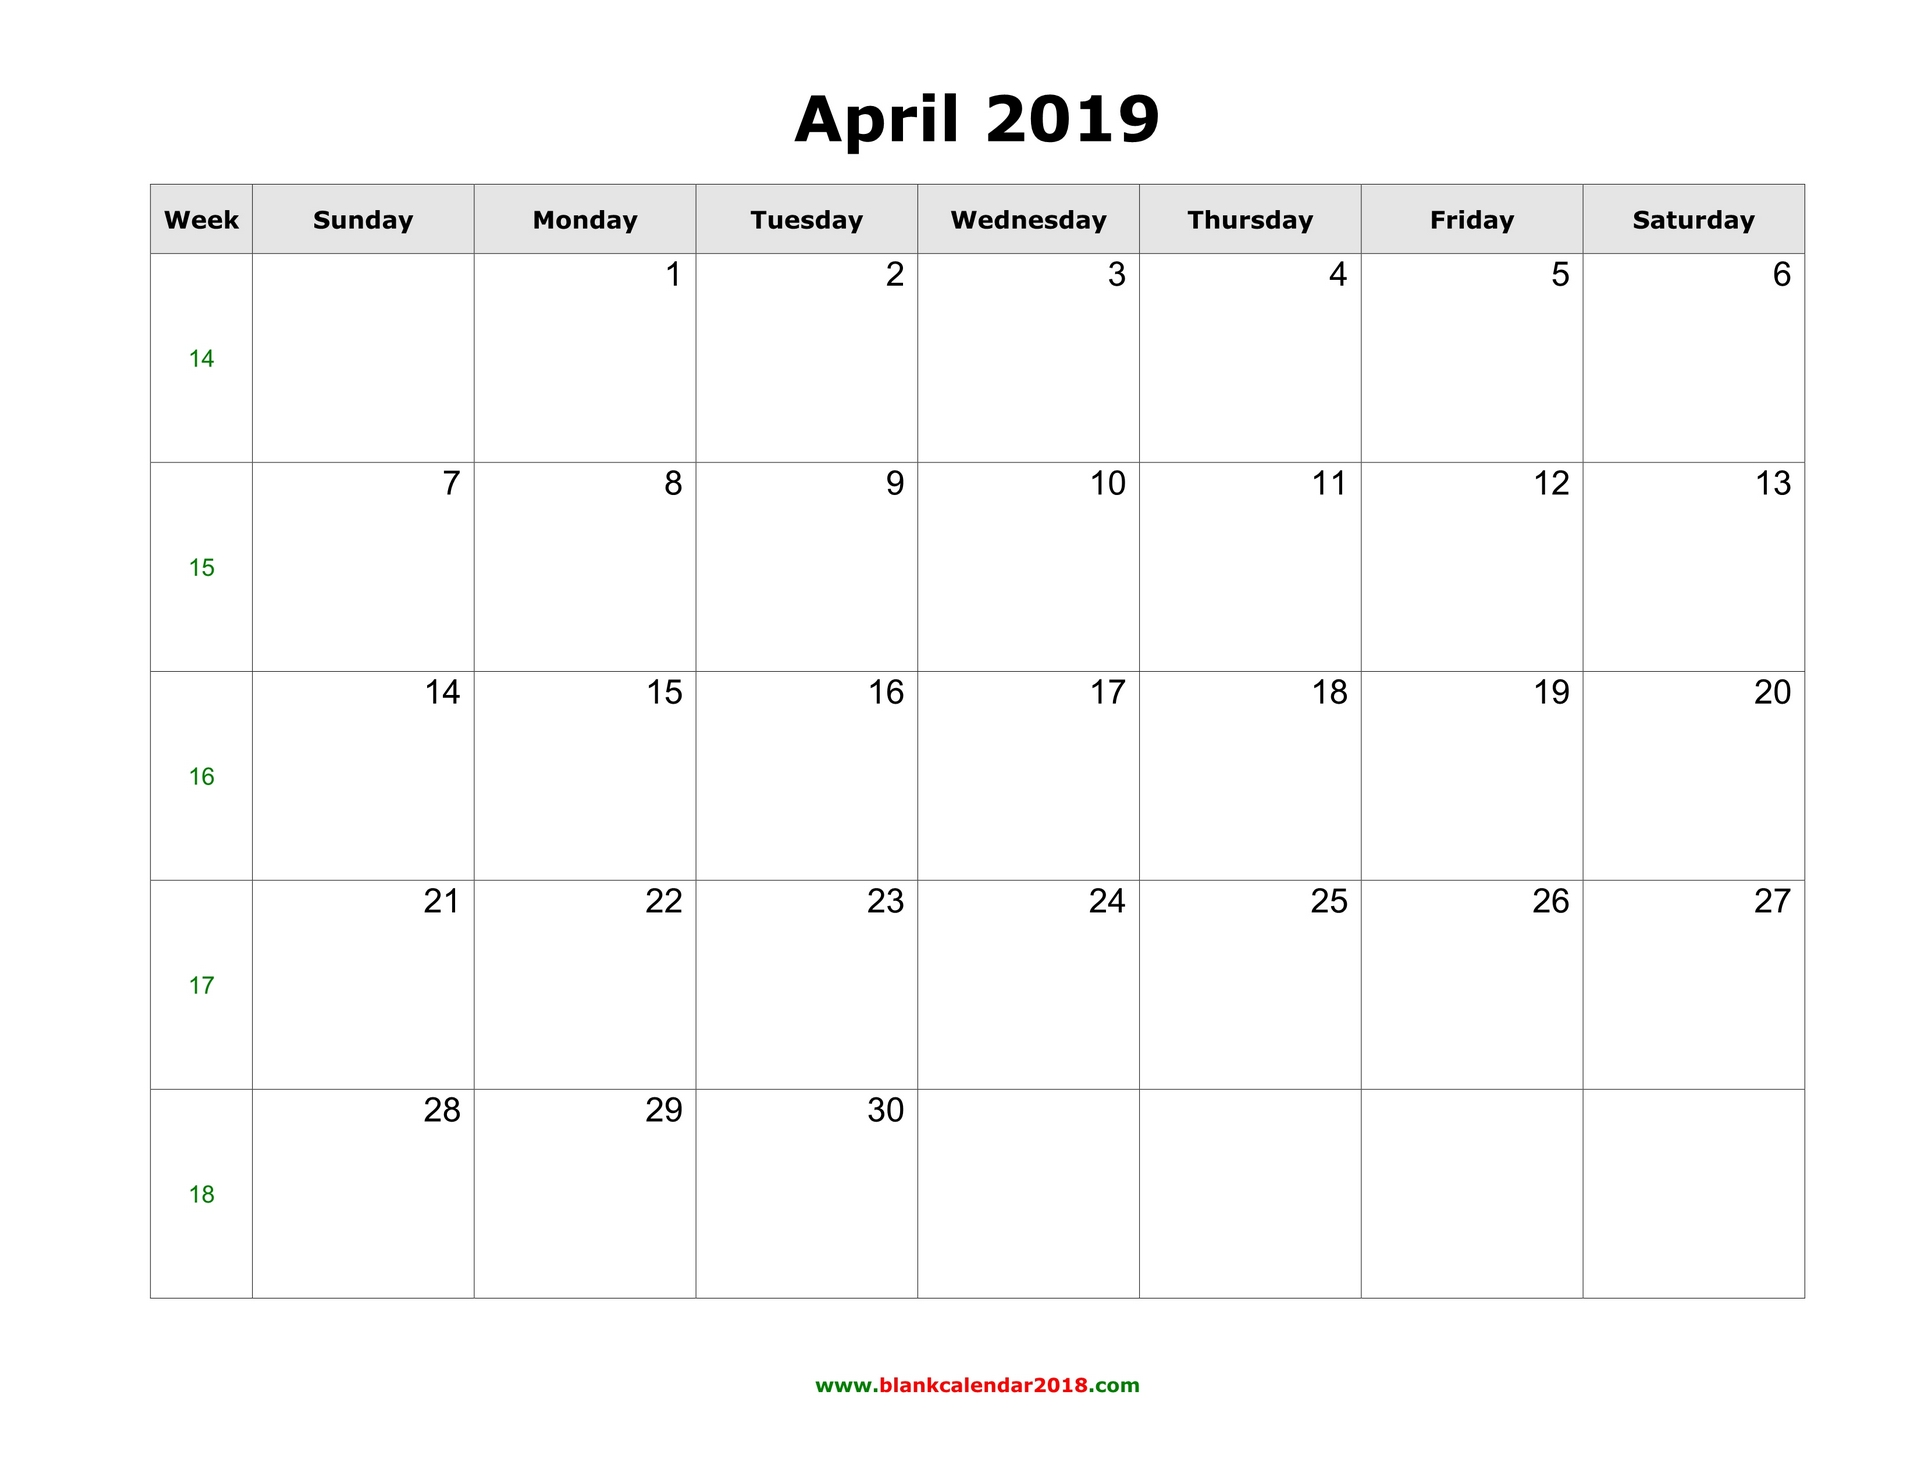 Exceptional image throughout april calender printable